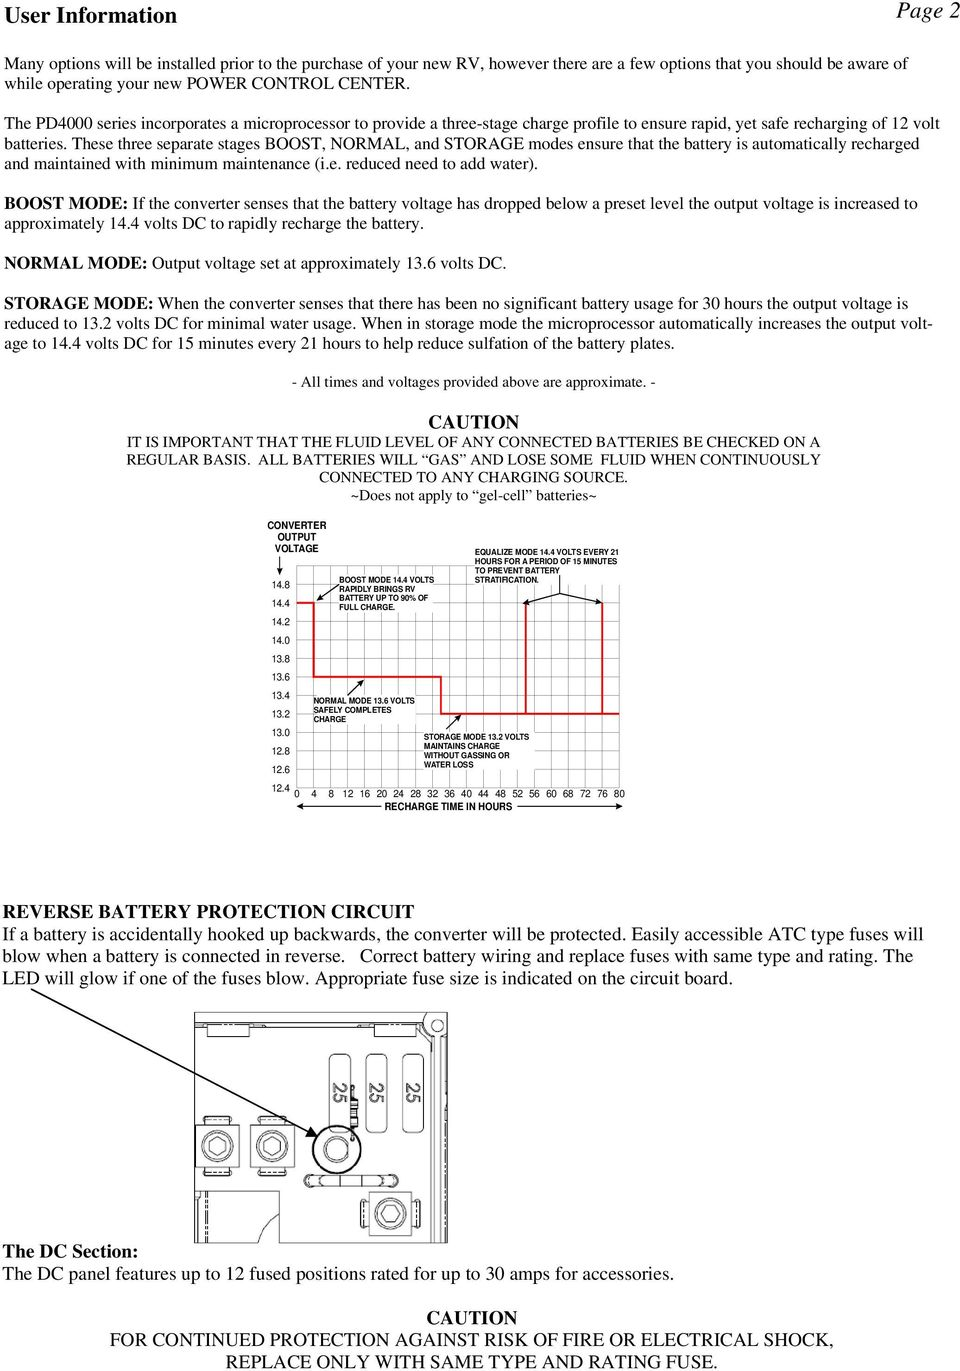 Installation And Operation Guide For Pd4000 Series Power Control Intelli Converter Wiring Diagram These Three Separate Stages Boost Normal Storage Modes Ensure That The Battery Is